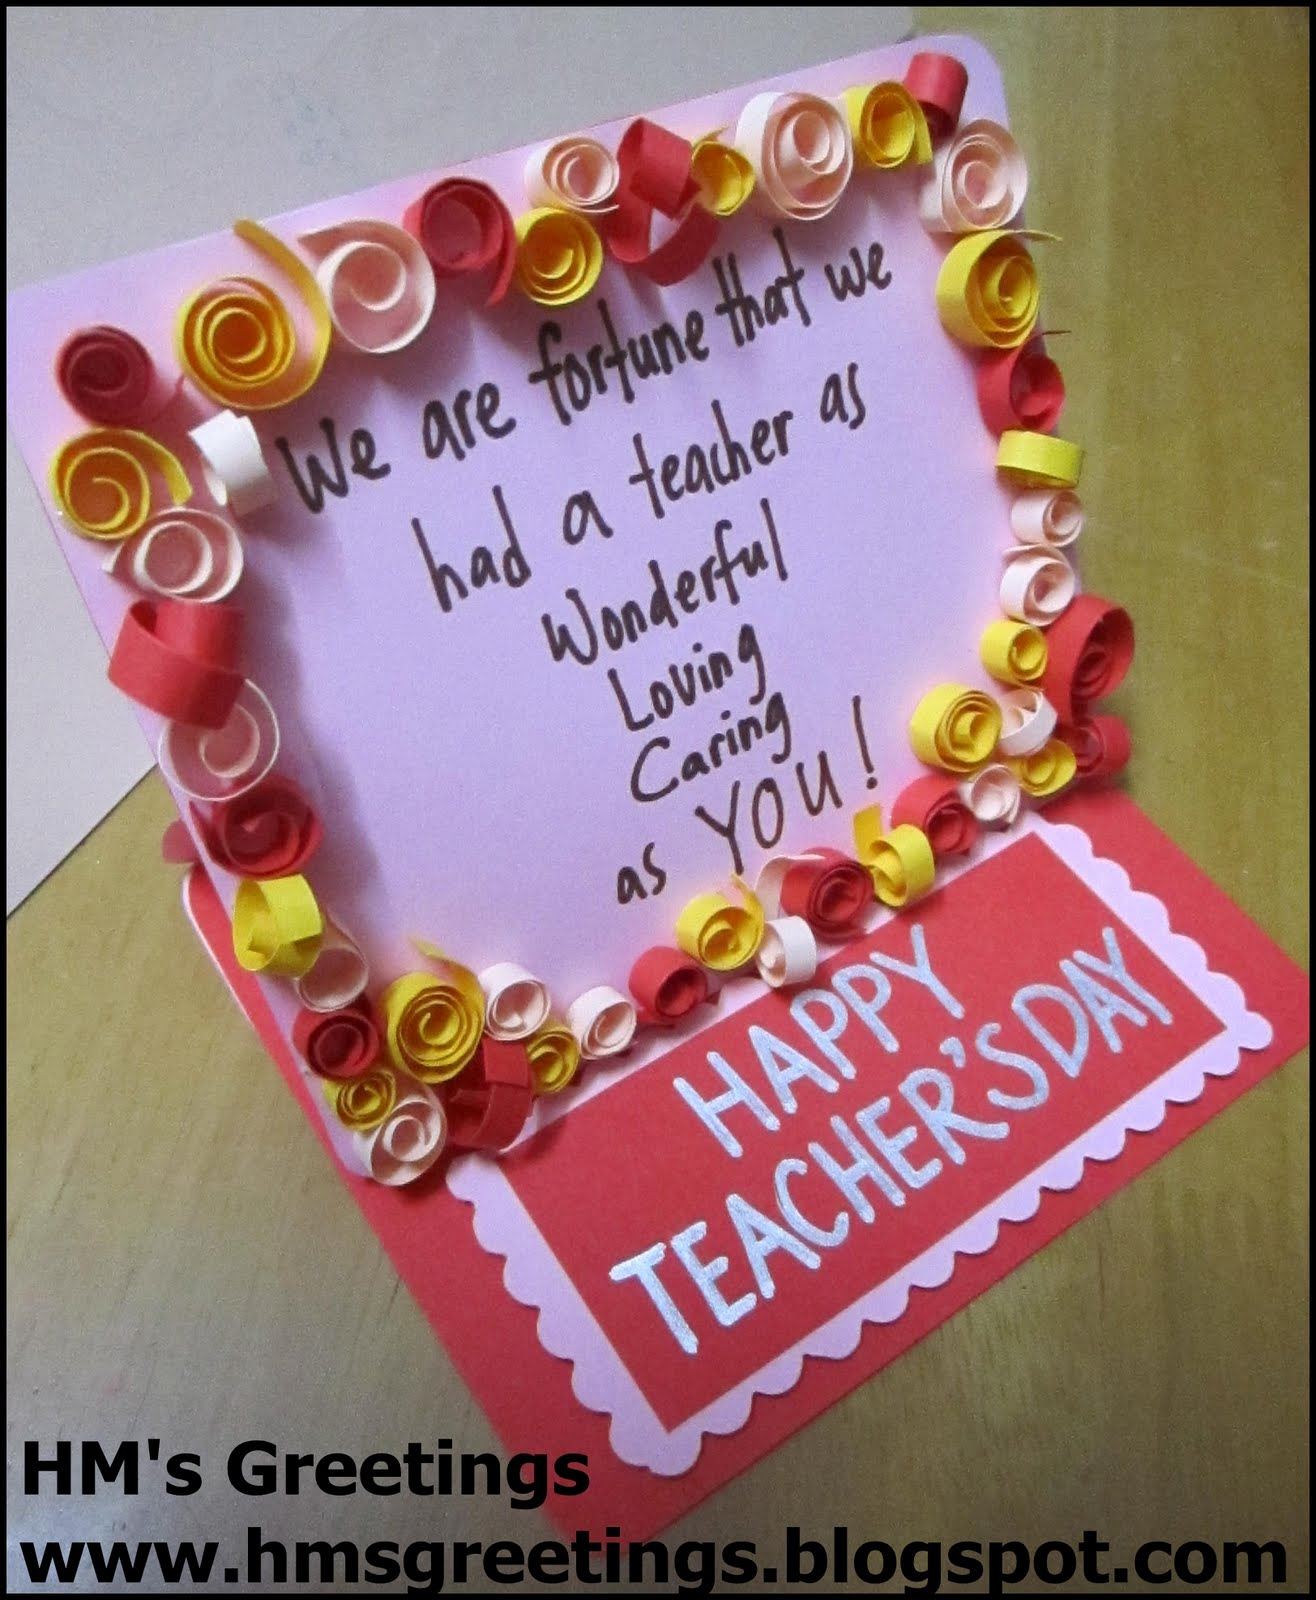 HM's Greetings: Happy Teachers' Day Card #1